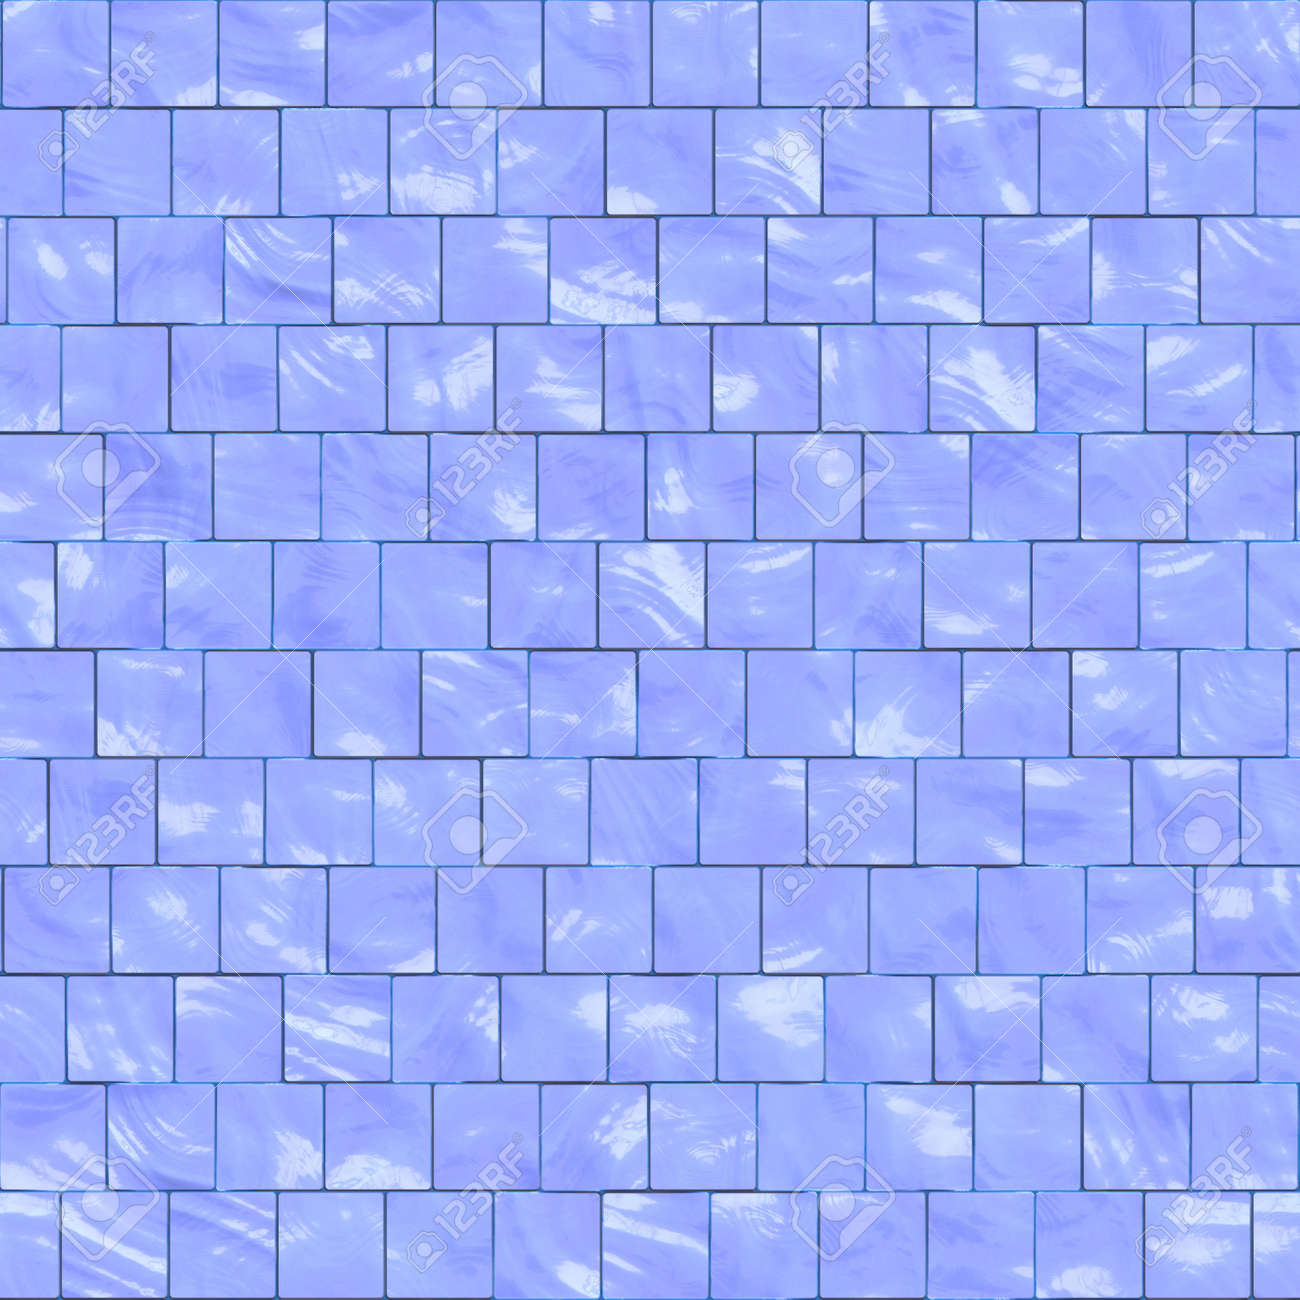 Blue Ceramic Tiles For Kitchen Or Bathroom, Seamlessly Tillable ...